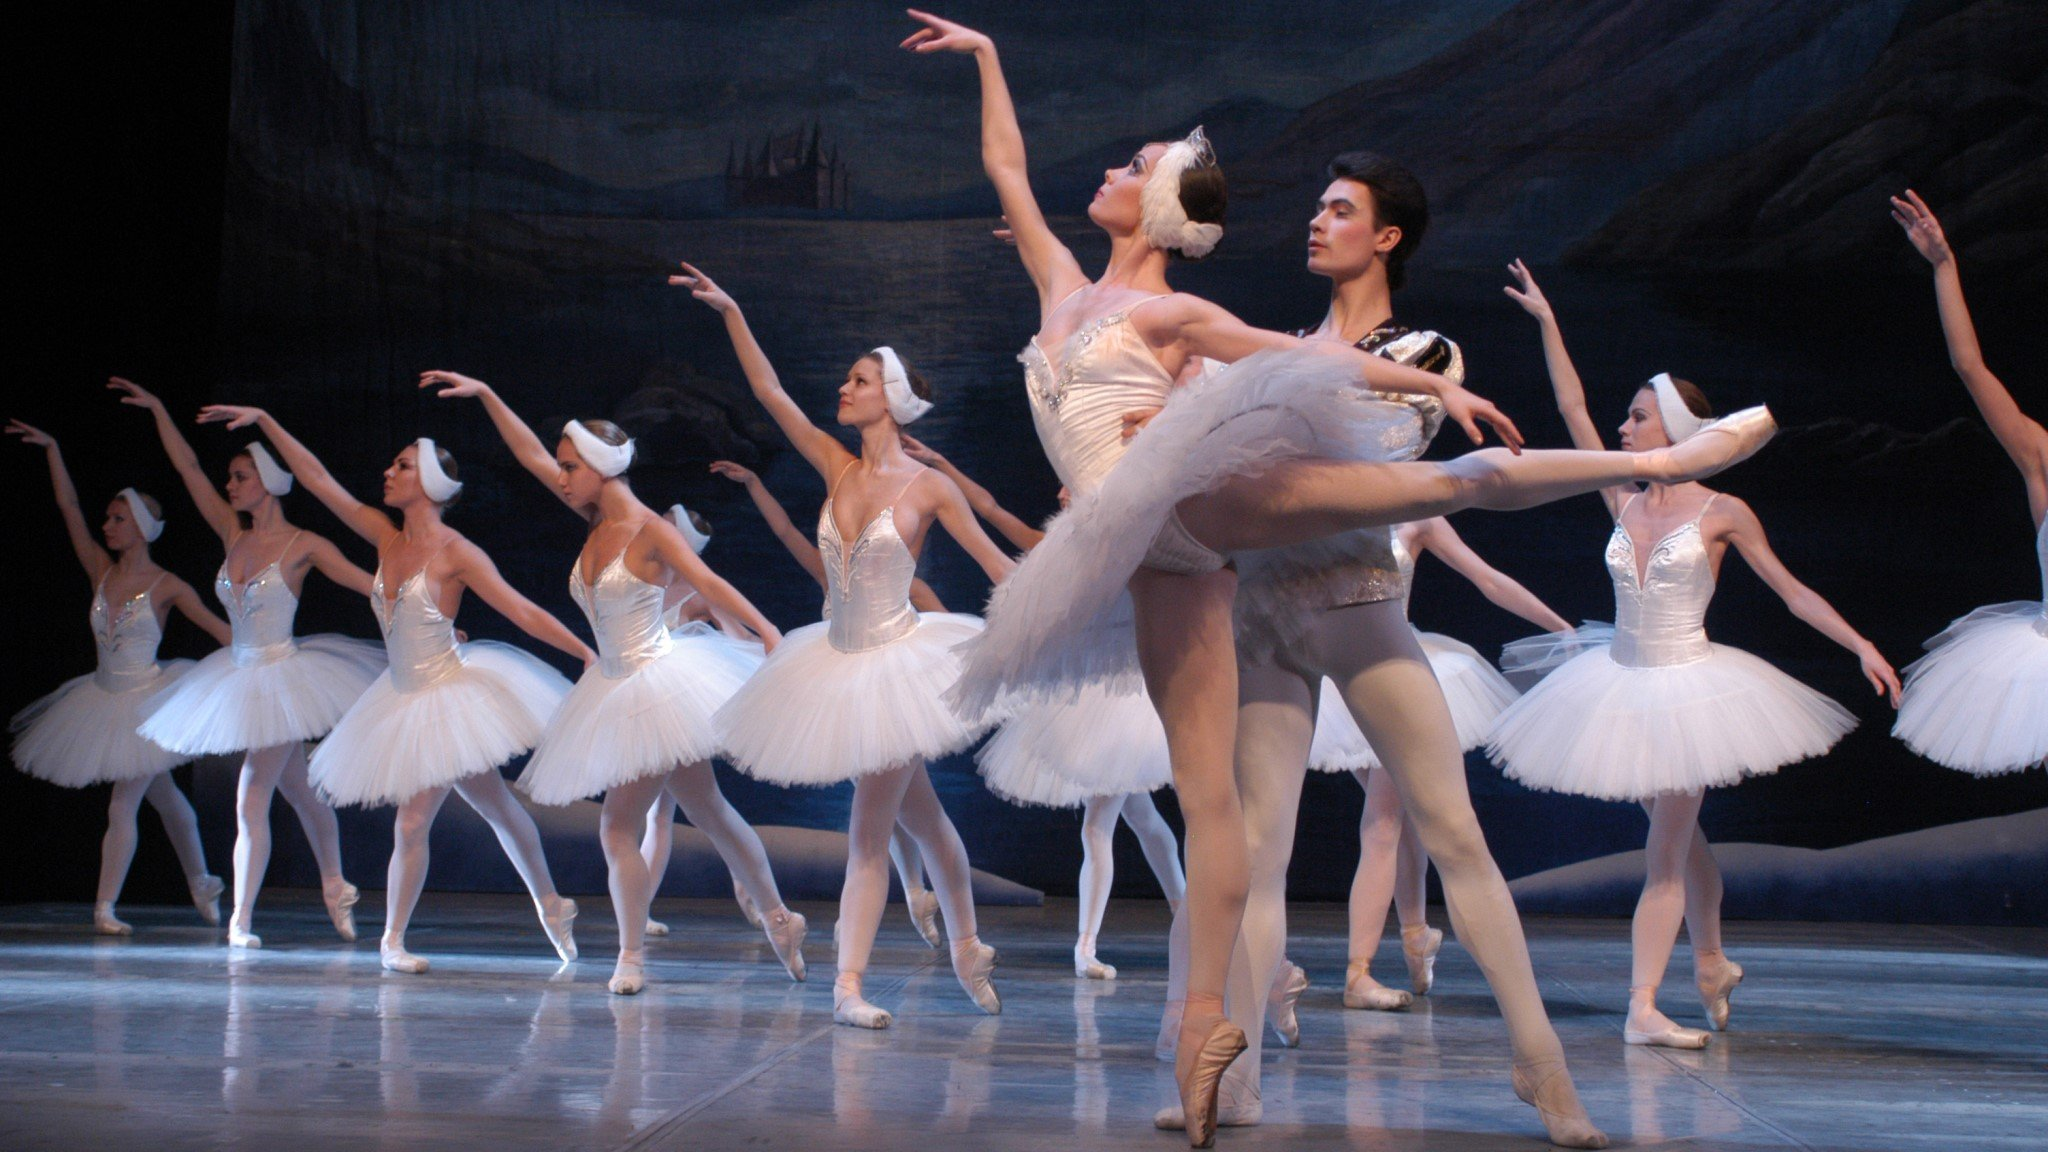 Swan Lake by the Russian State Ballet of Siberia at New Theatre, Oxford